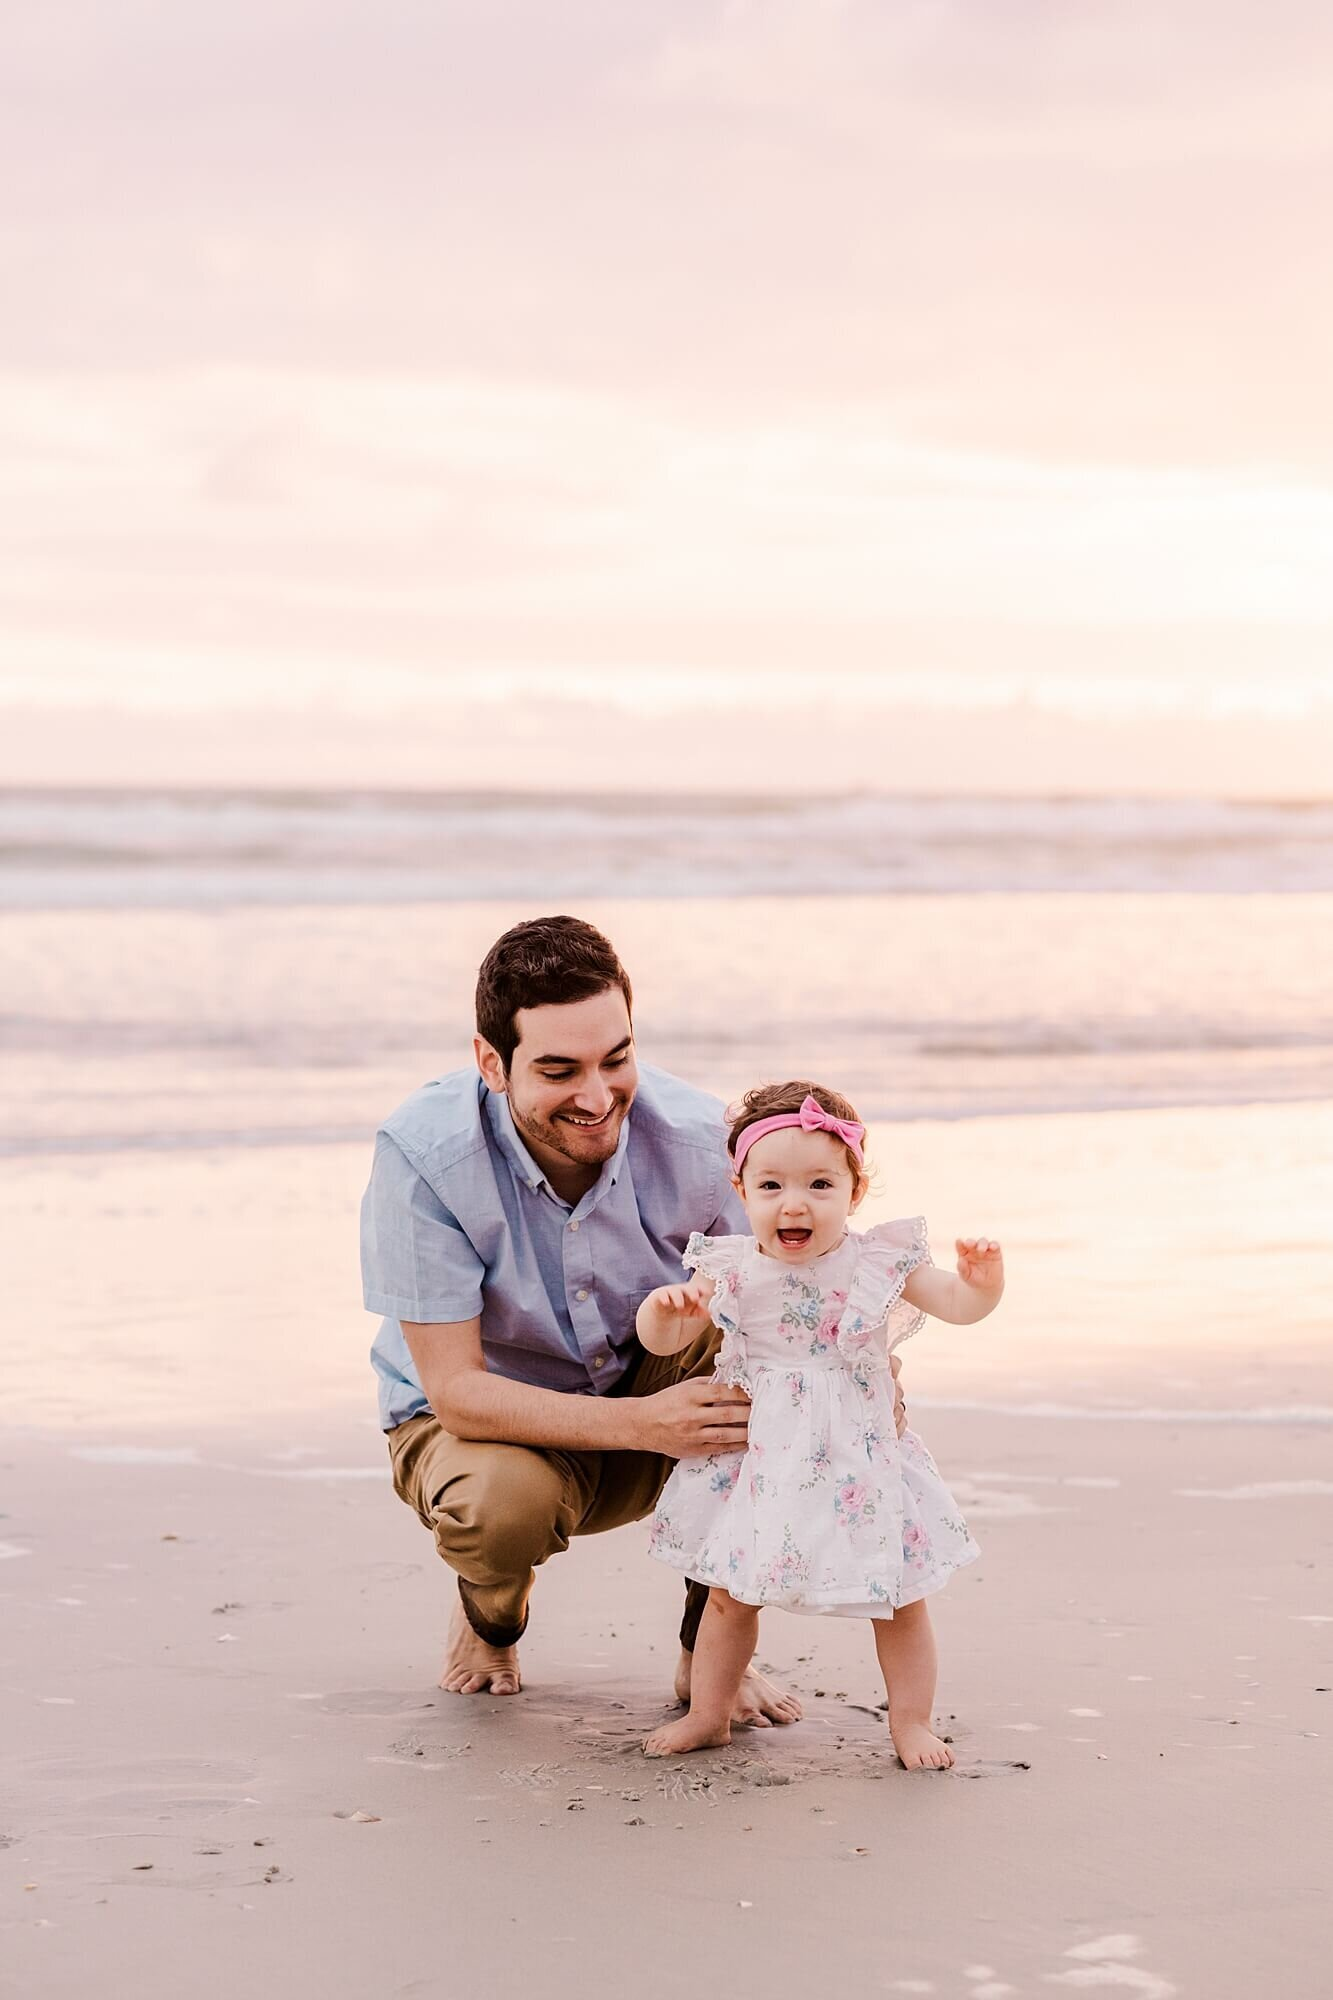 winterhaven-park-family-session-new-smyrna-beach-haleigh-nicole-photography_0012